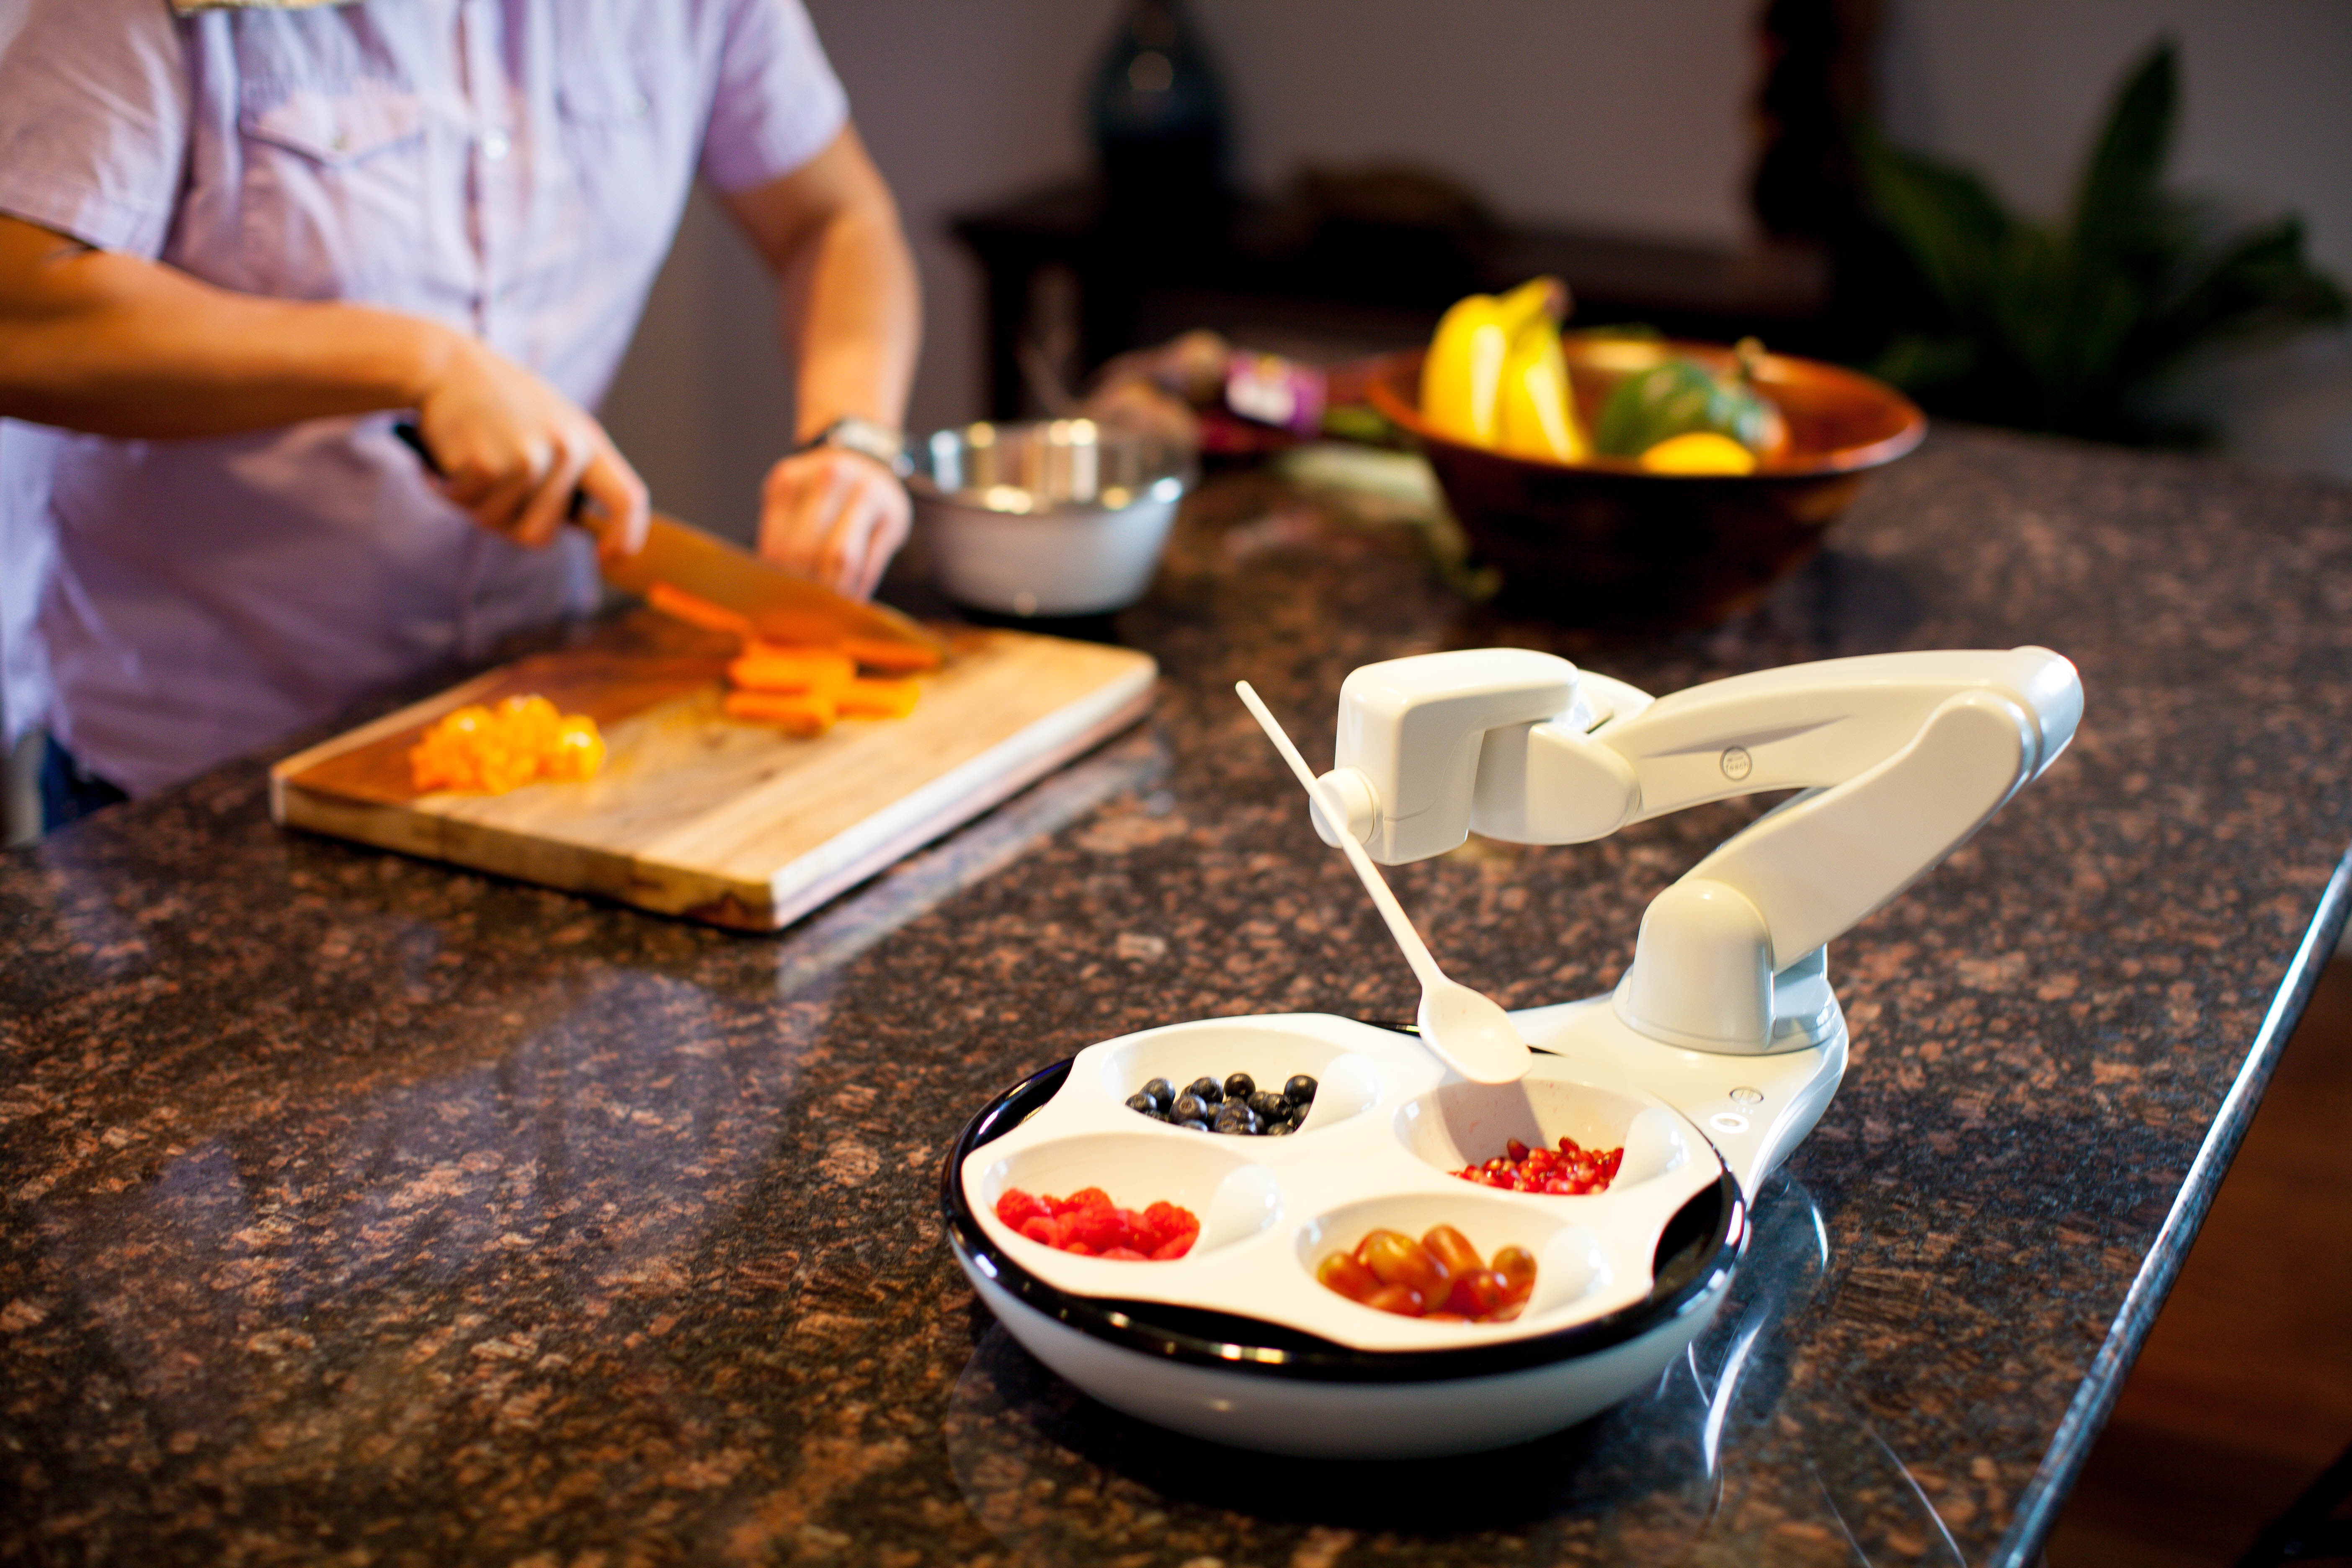 Snapshot of the Obi self feeder from the front shows the arm and spoon in position over the plate.